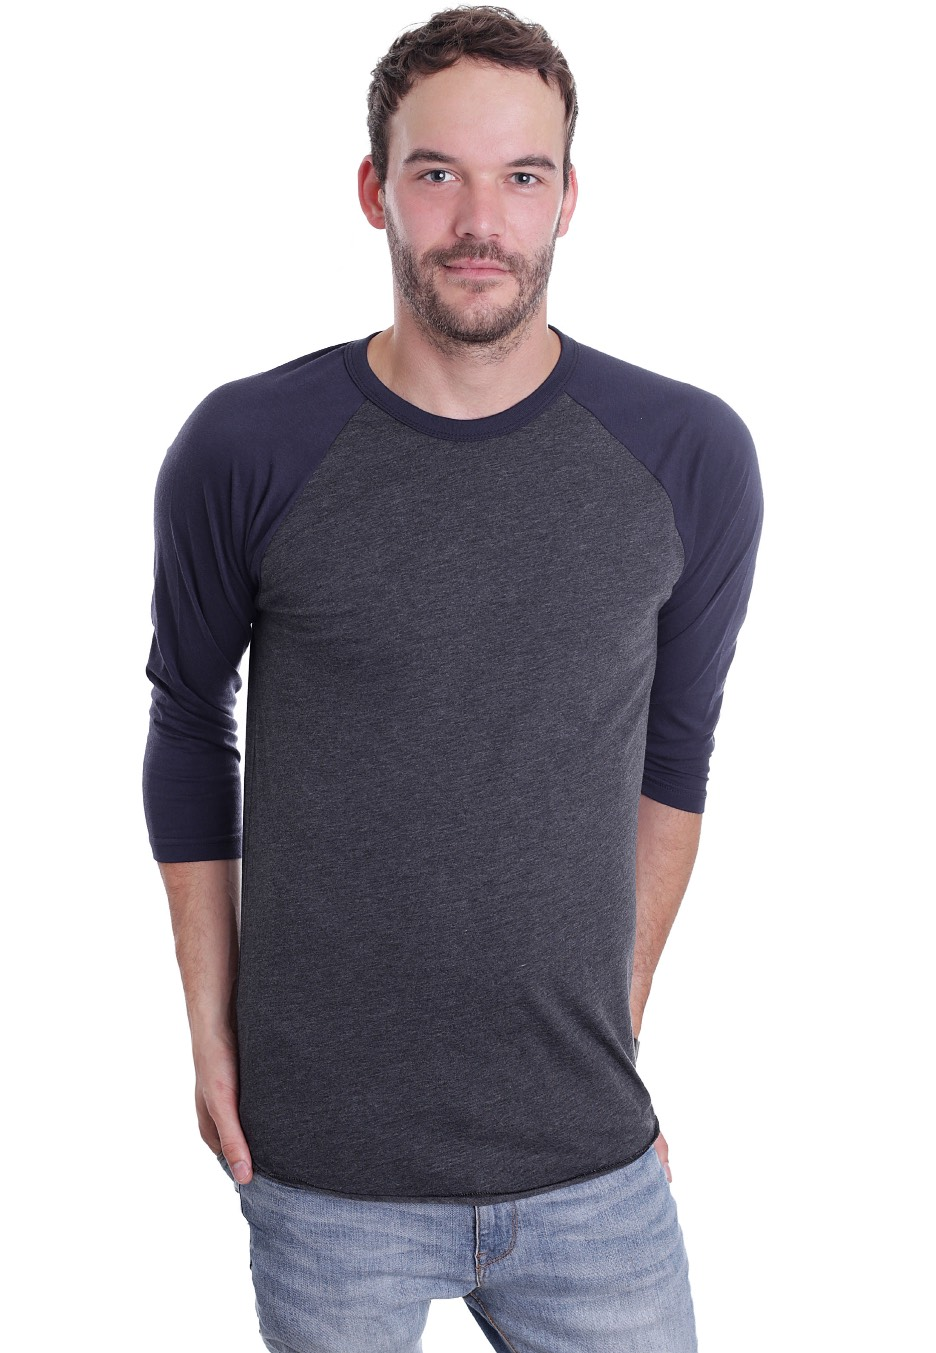 American Apparel - Raglan Heather Black/Navy - Longsleeve ...